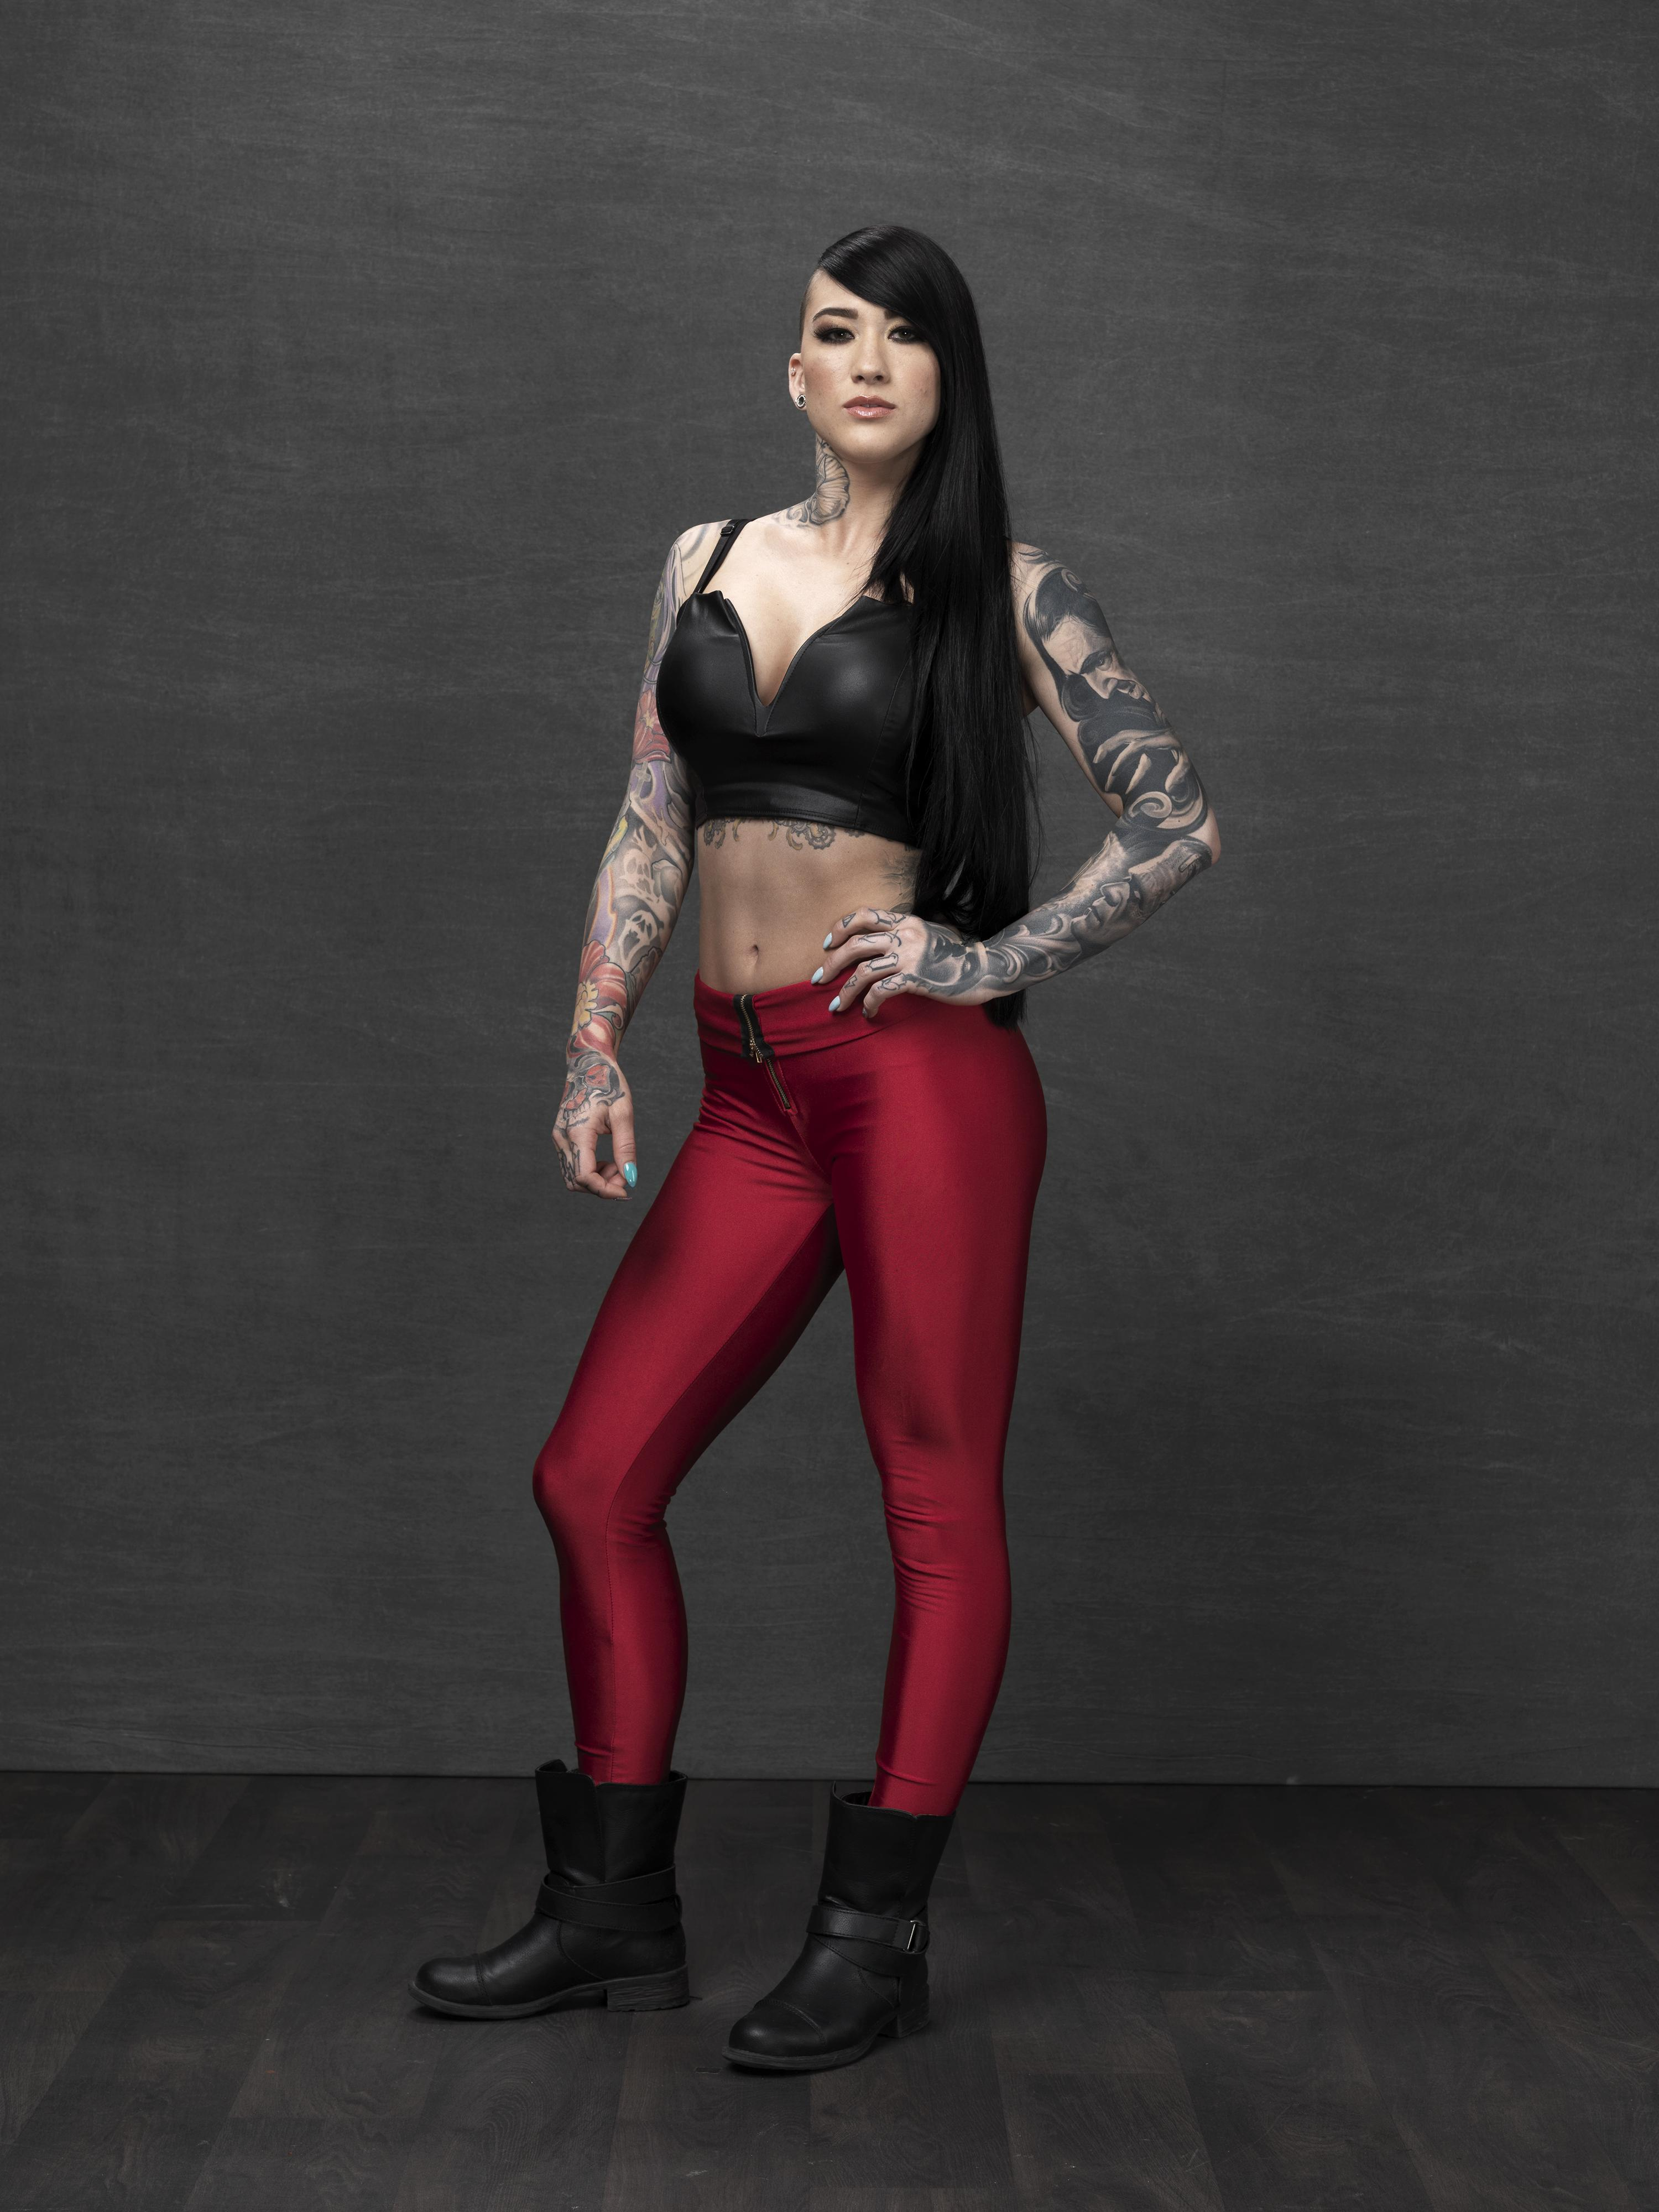 Ink Master' Season 6 Cast: Meet The 18 Contestants Before